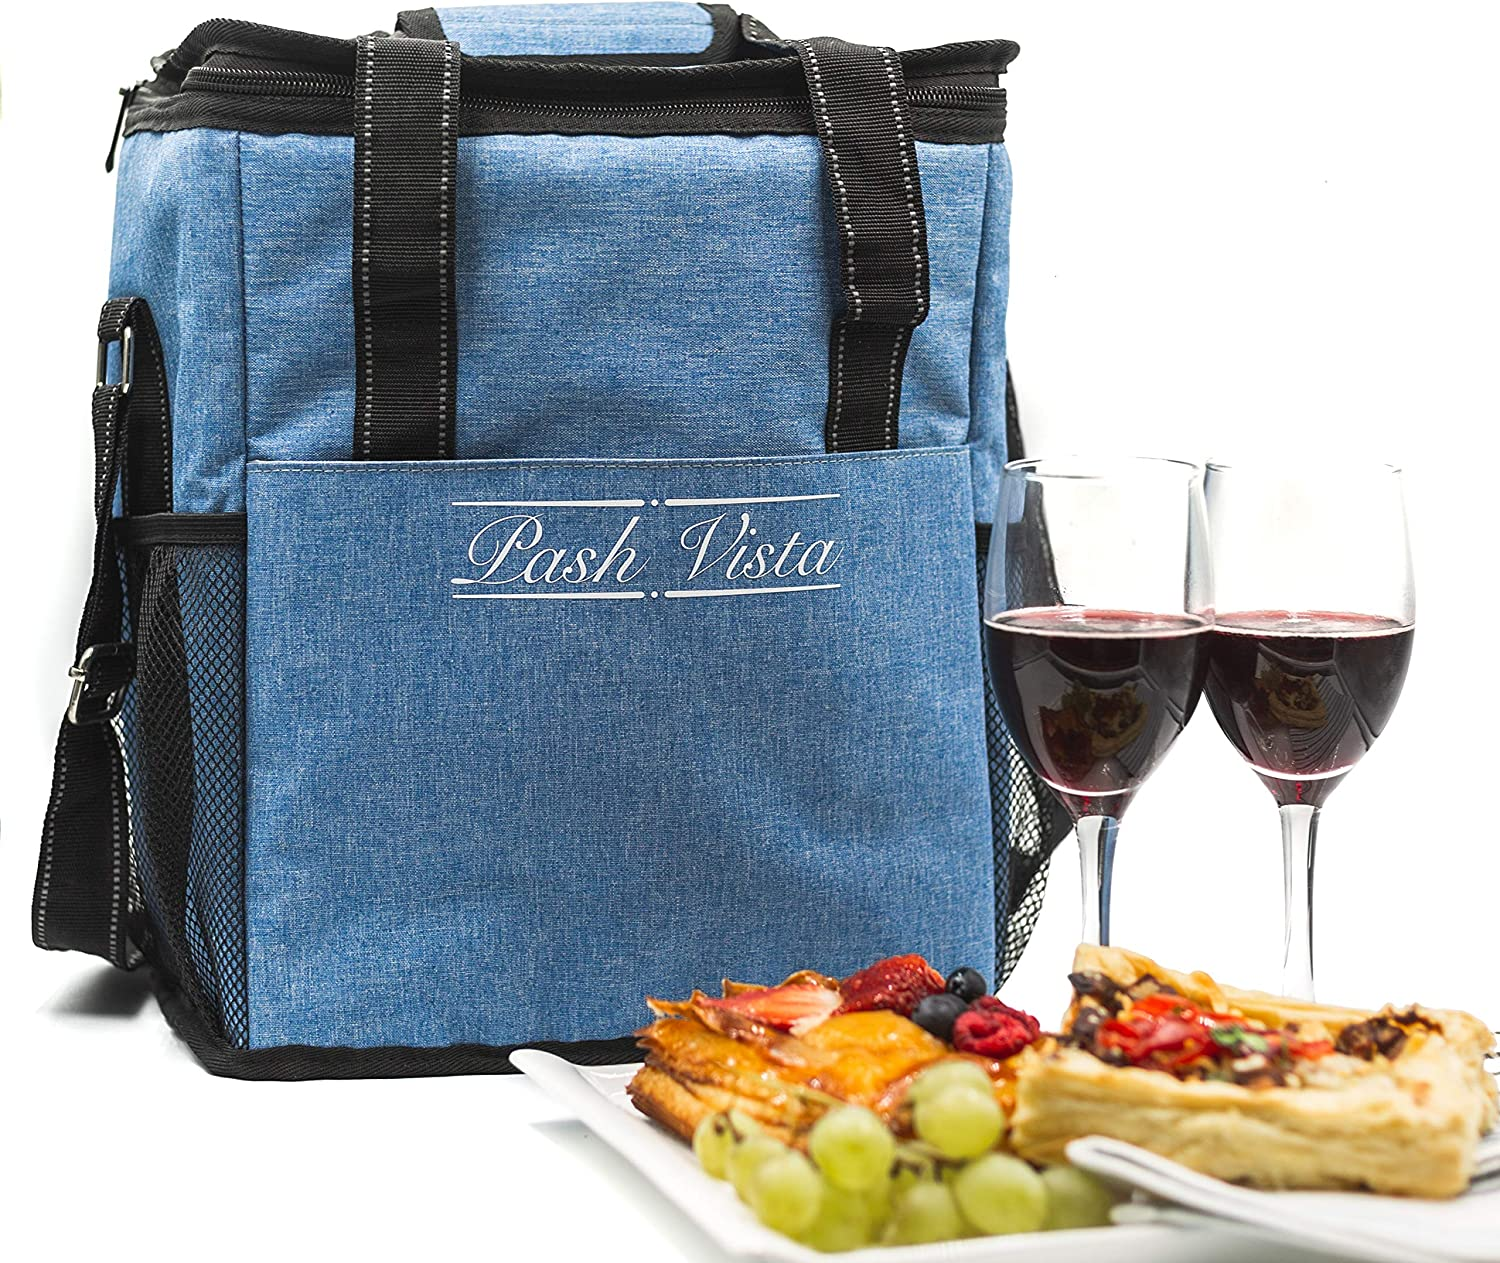 Pash Vista 6 Bottle Insulated Wine and Grocery Carry Bag with Adjustable Strap and Handle, Versatile Padded Wine Cooler Tote, Blue, Quality and Value